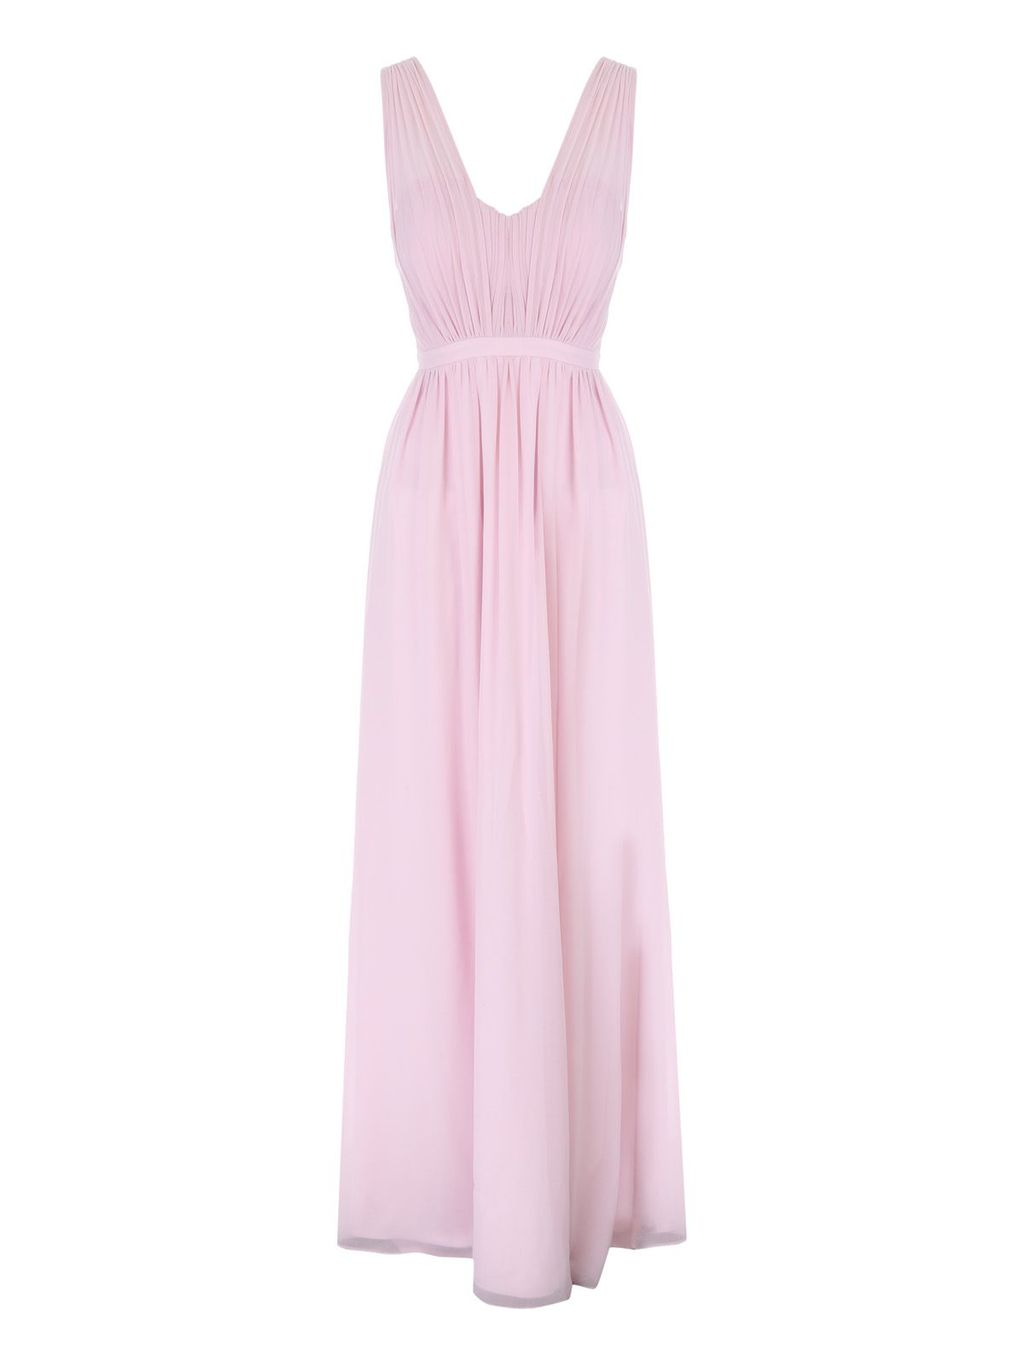 Pink Pleated Maxi Dress, Pastel Pink - neckline: low v-neck; fit: fitted at waist; pattern: plain; sleeve style: sleeveless; style: maxi dress; predominant colour: blush; length: floor length; fibres: polyester/polyamide - 100%; occasions: occasion; sleeve length: sleeveless; texture group: crepes; pattern type: fabric; season: s/s 2016; wardrobe: event